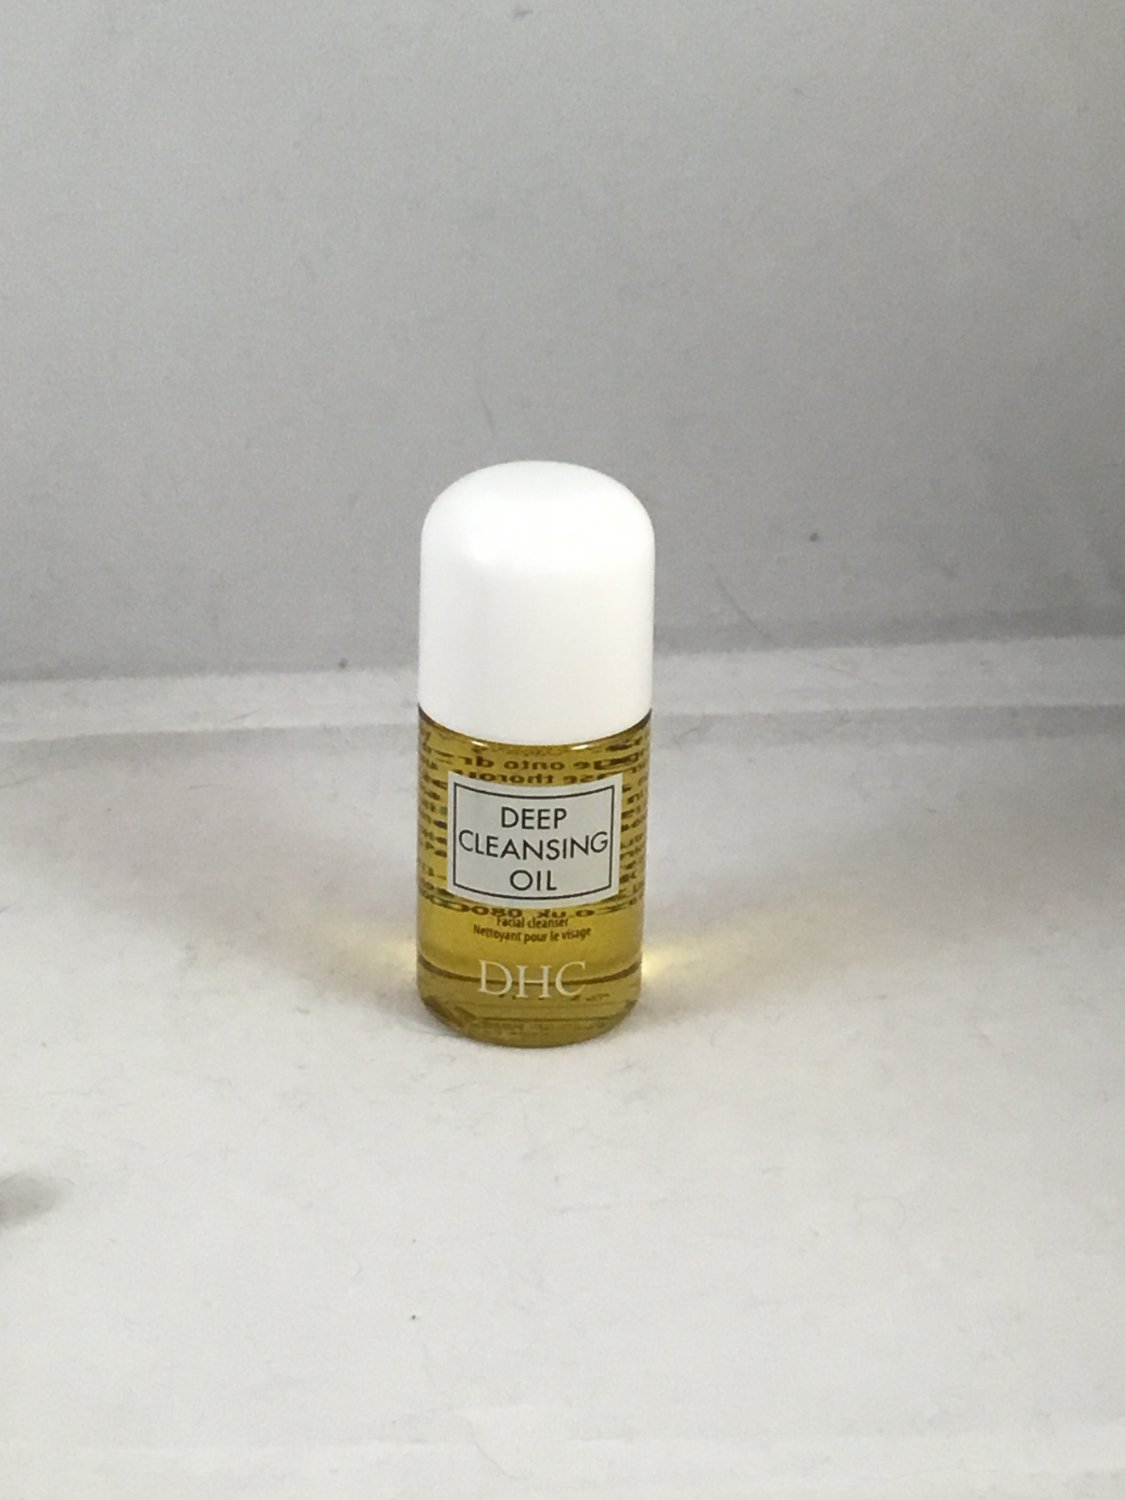 DHC Deep Cleansing Oil Travel Size Facial Cleanser Makeup Remover